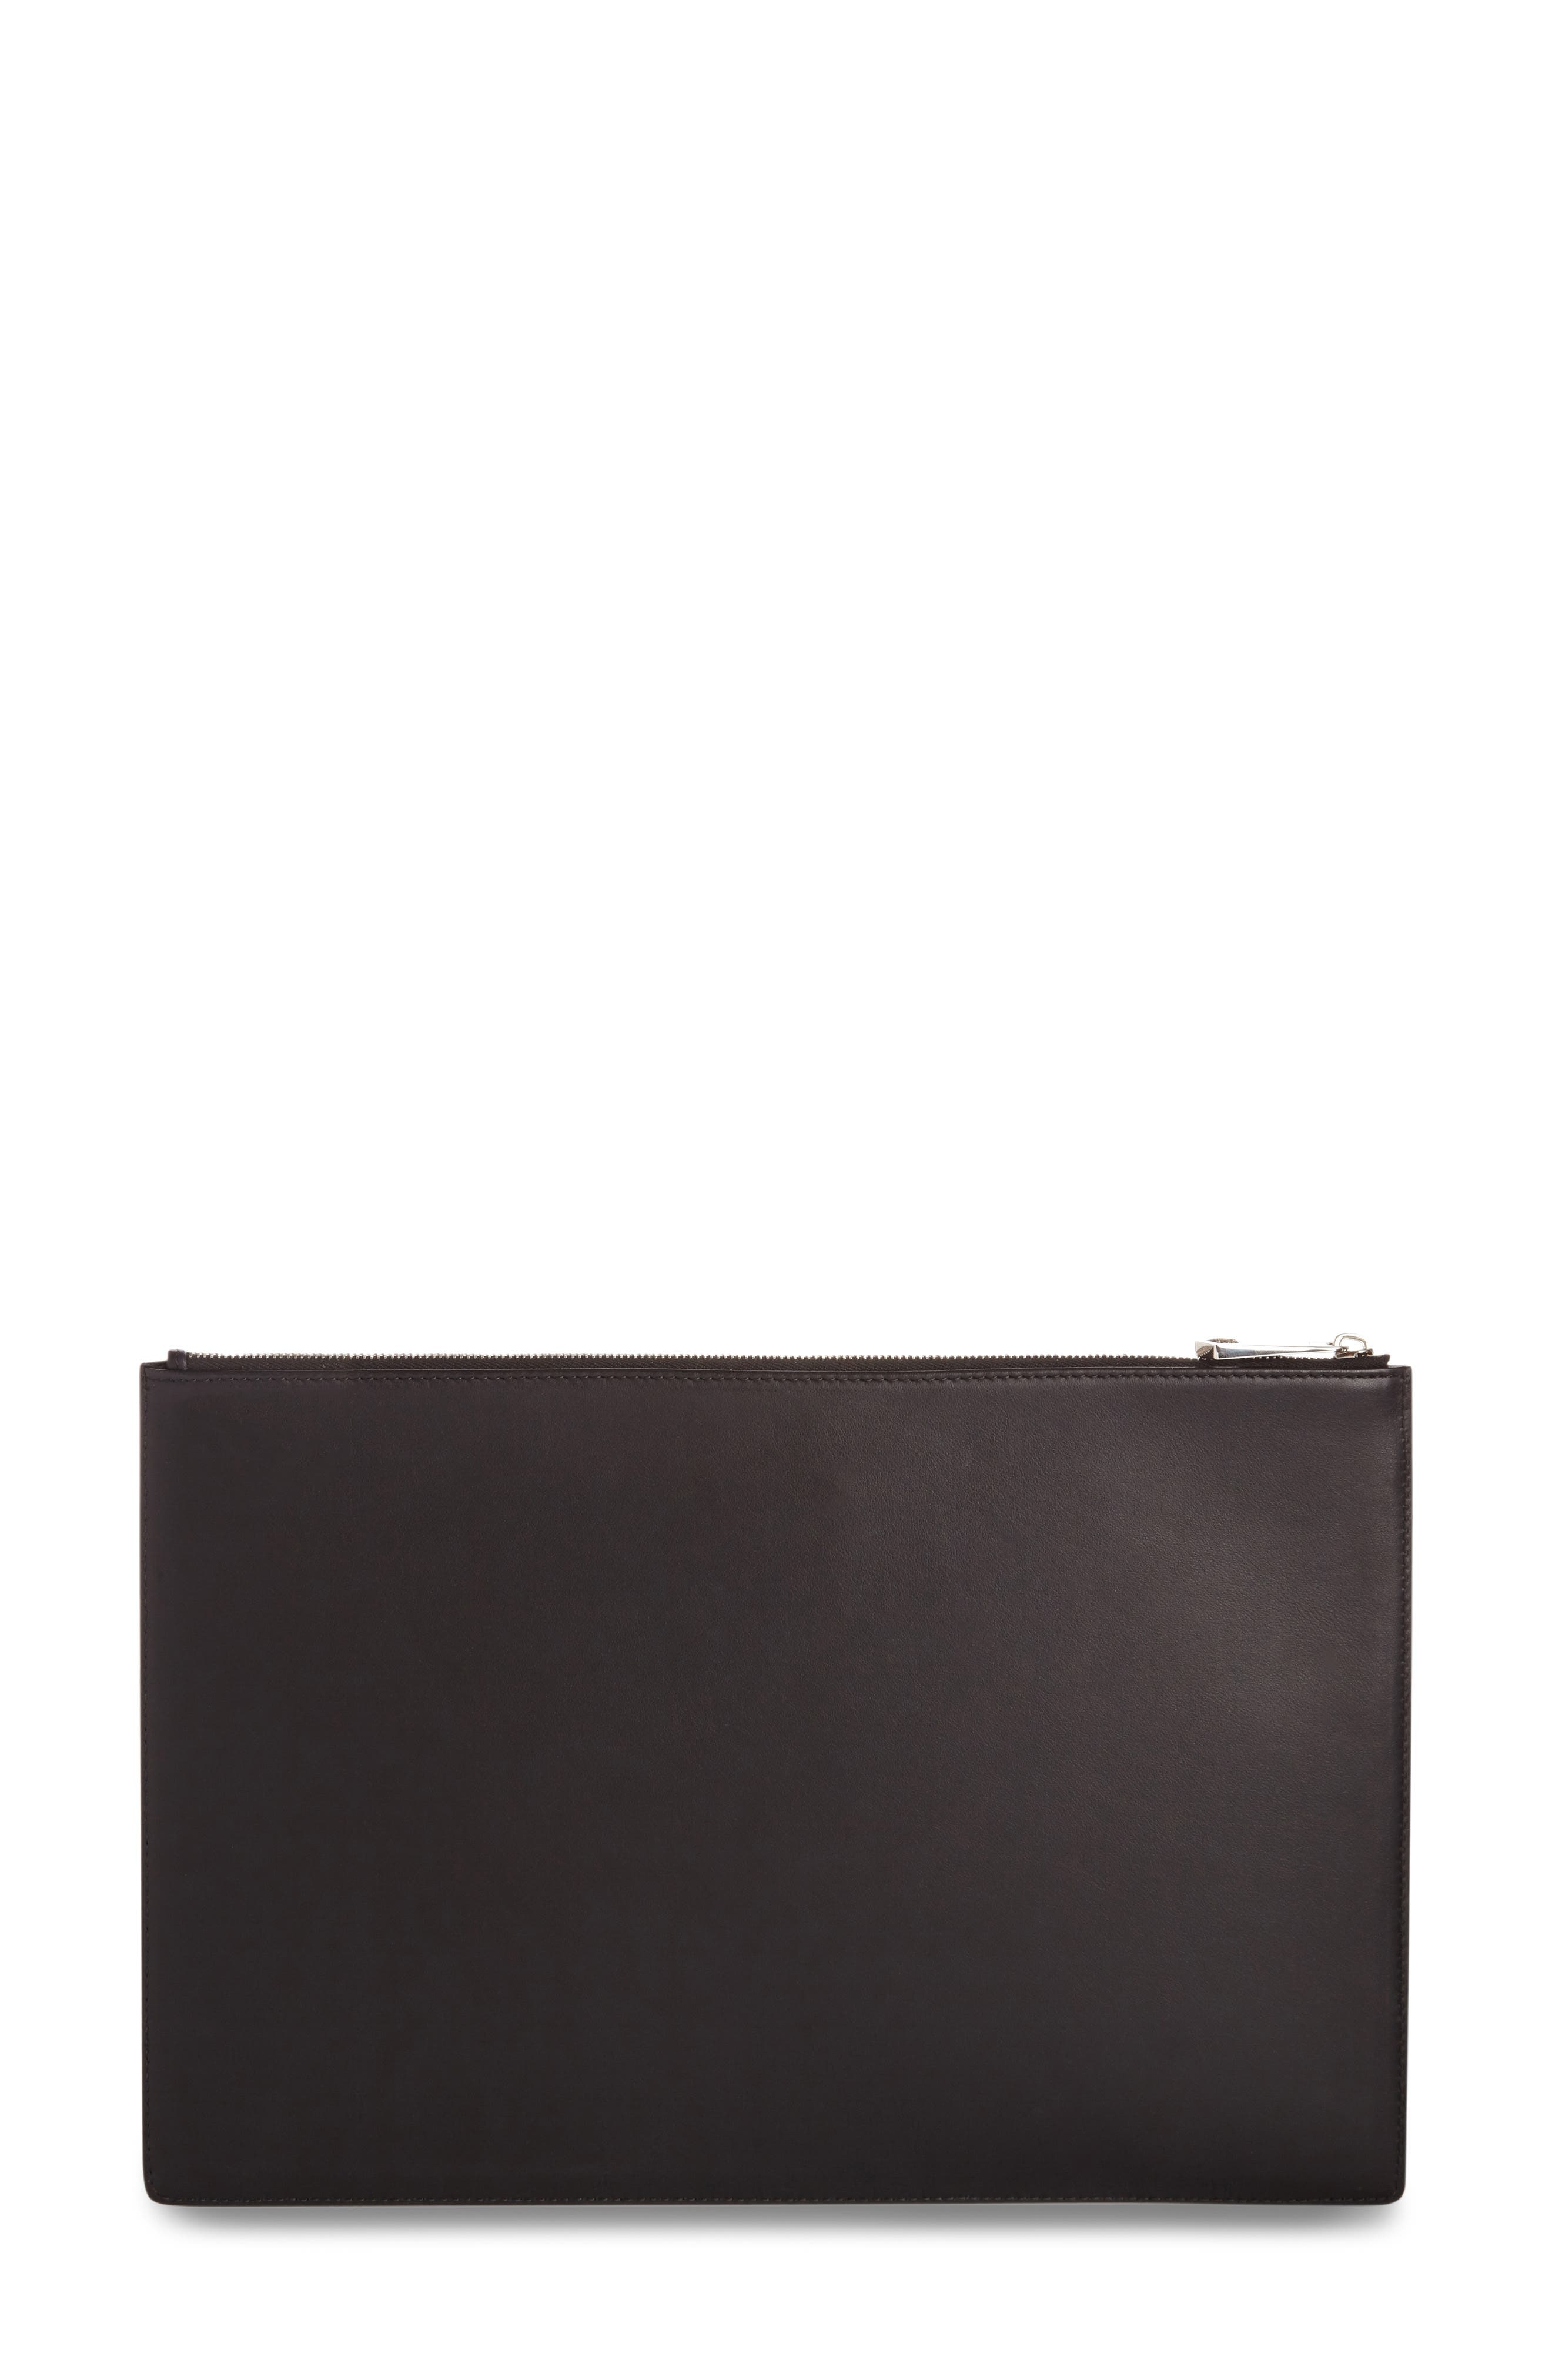 Bambi<sup>™</sup> Print Leather Pouch,                             Alternate thumbnail 3, color,                             001